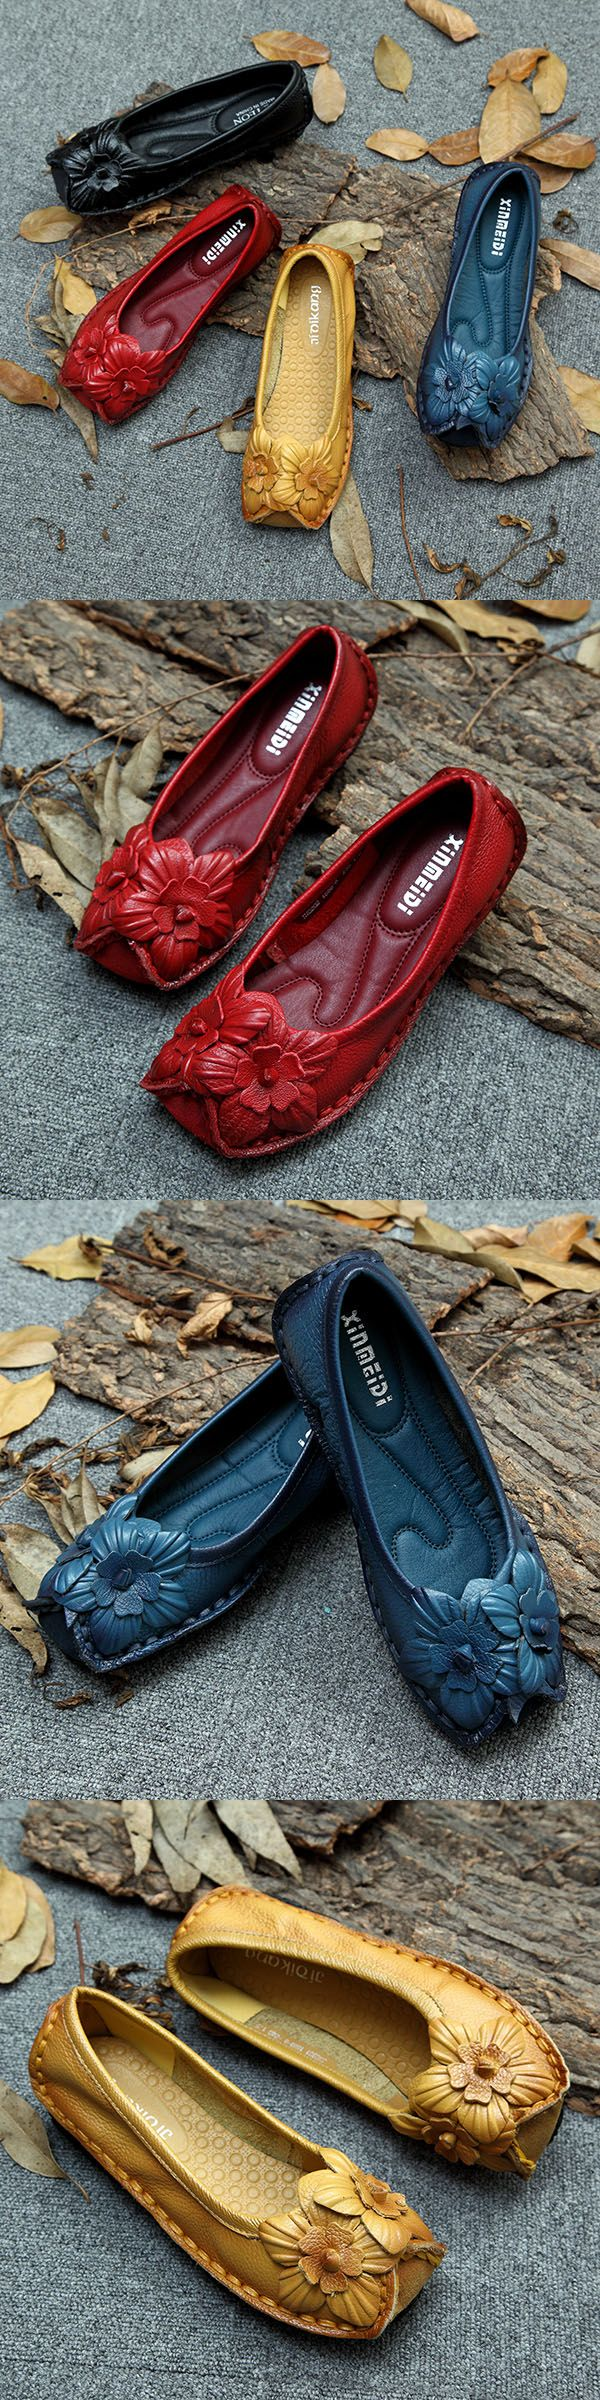 【51% OFF】Socofy Flower Decoration National Wind Soft Sole Retro Women Loafers_Handmade Leather Flats_Flower Women Shoes